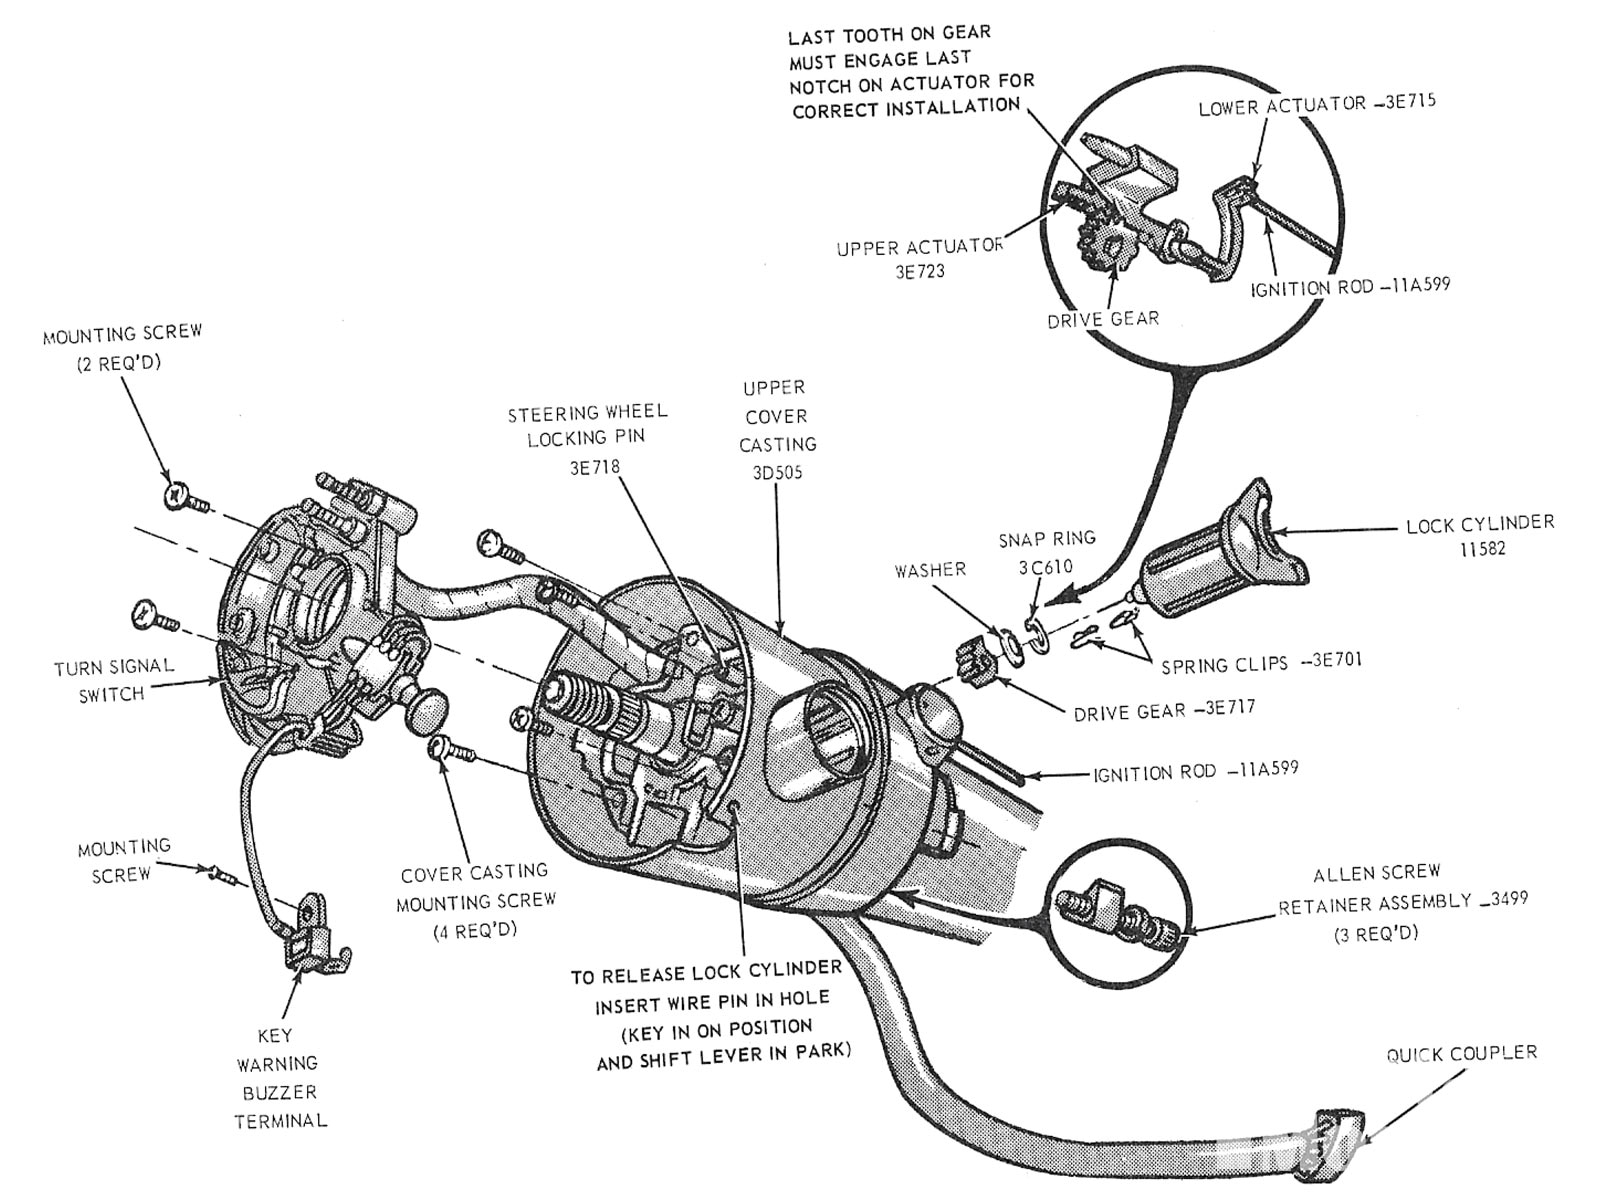 04 ford mustang locking steering columnslocking tilt column diagram 1969 ford mustang tilt steering column moreover ignition switch wiring [ 1600 x 1200 Pixel ]